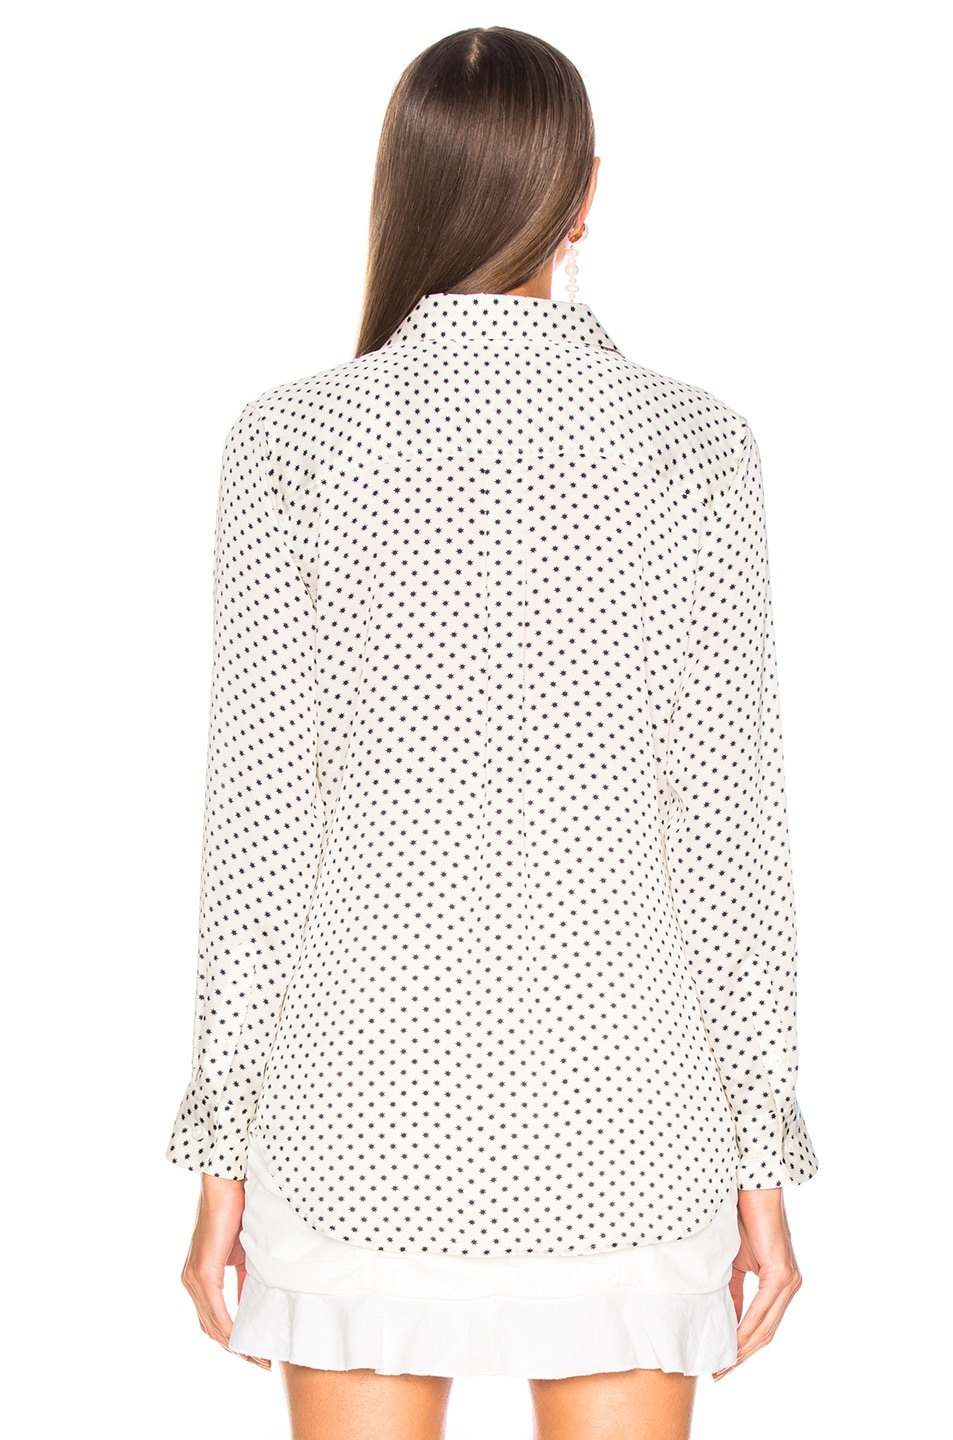 Image 3 of Equipment Slim Signature Blouse in Natural White & Eclipse